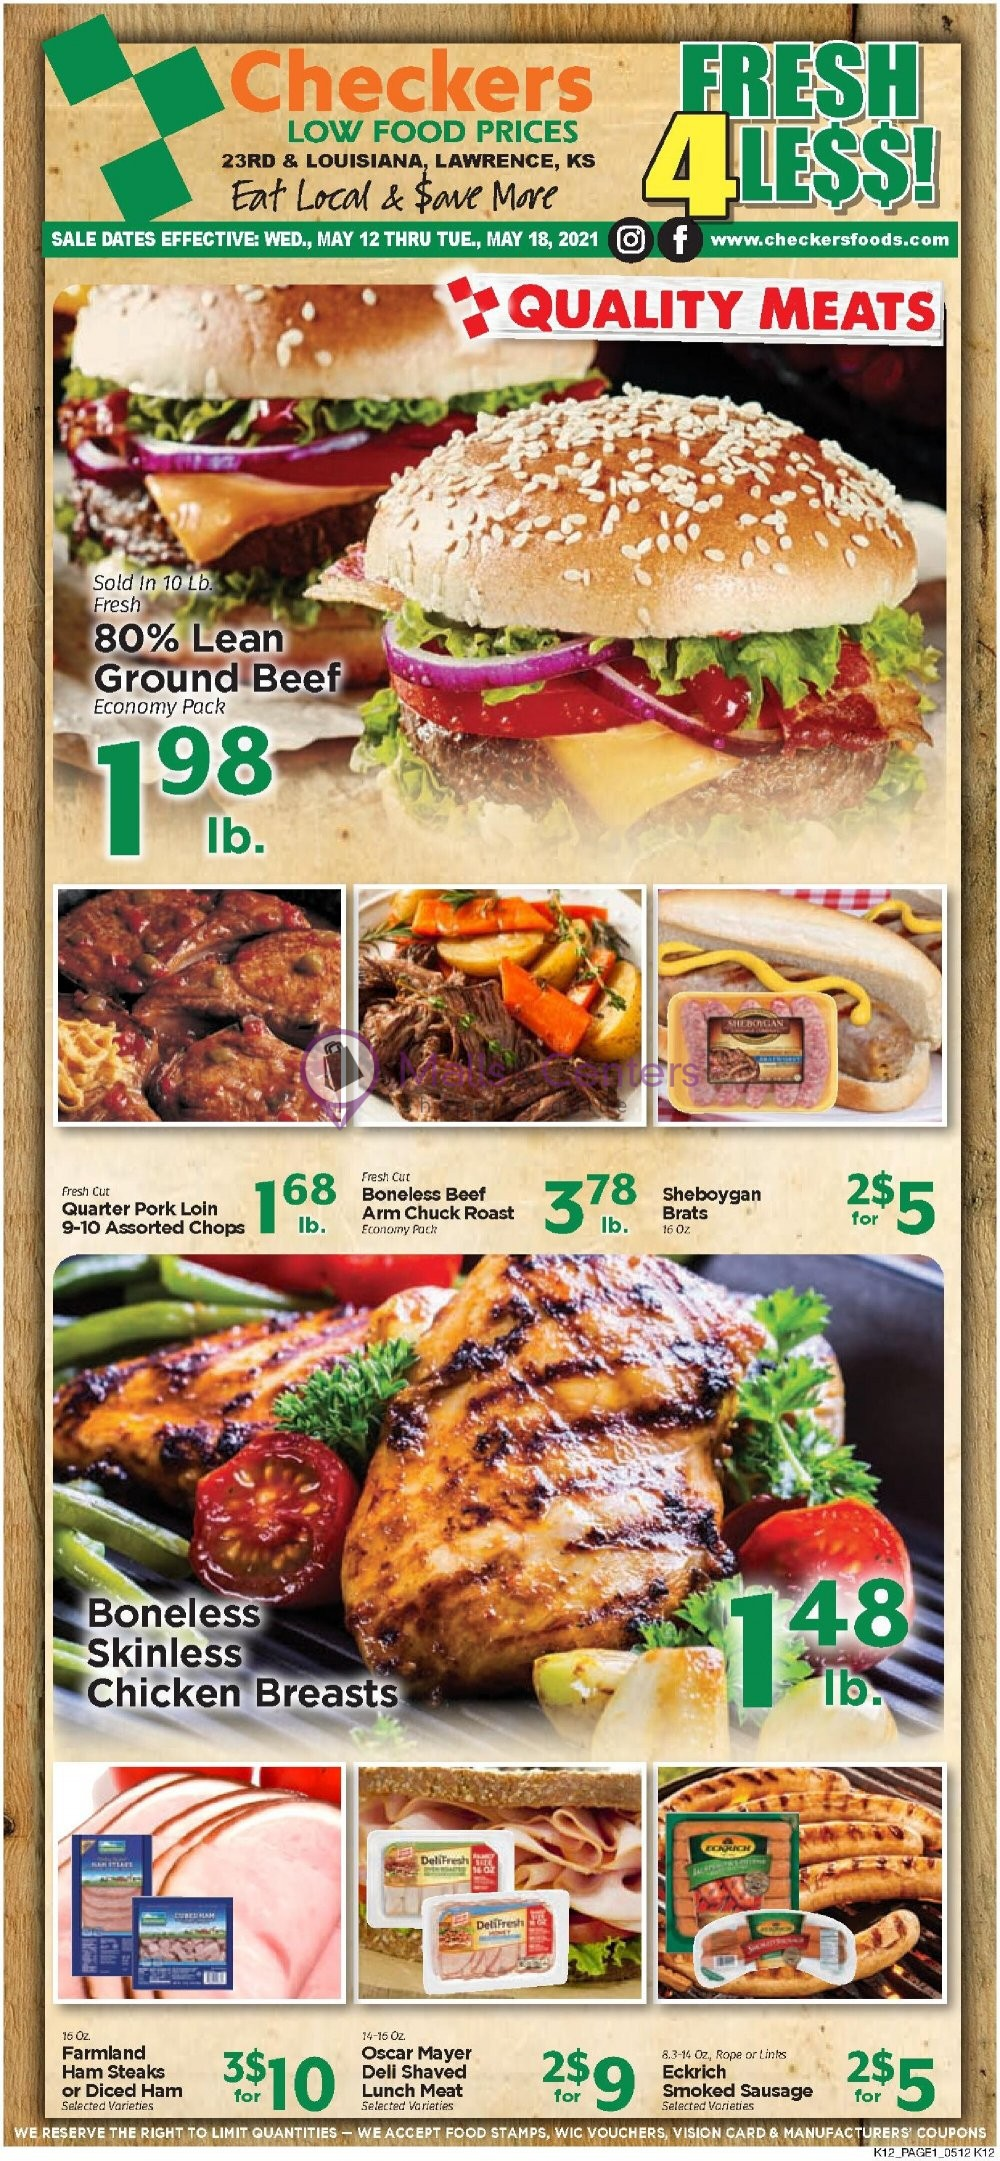 weekly ads Checkers Foods - page 1 - mallscenters.com